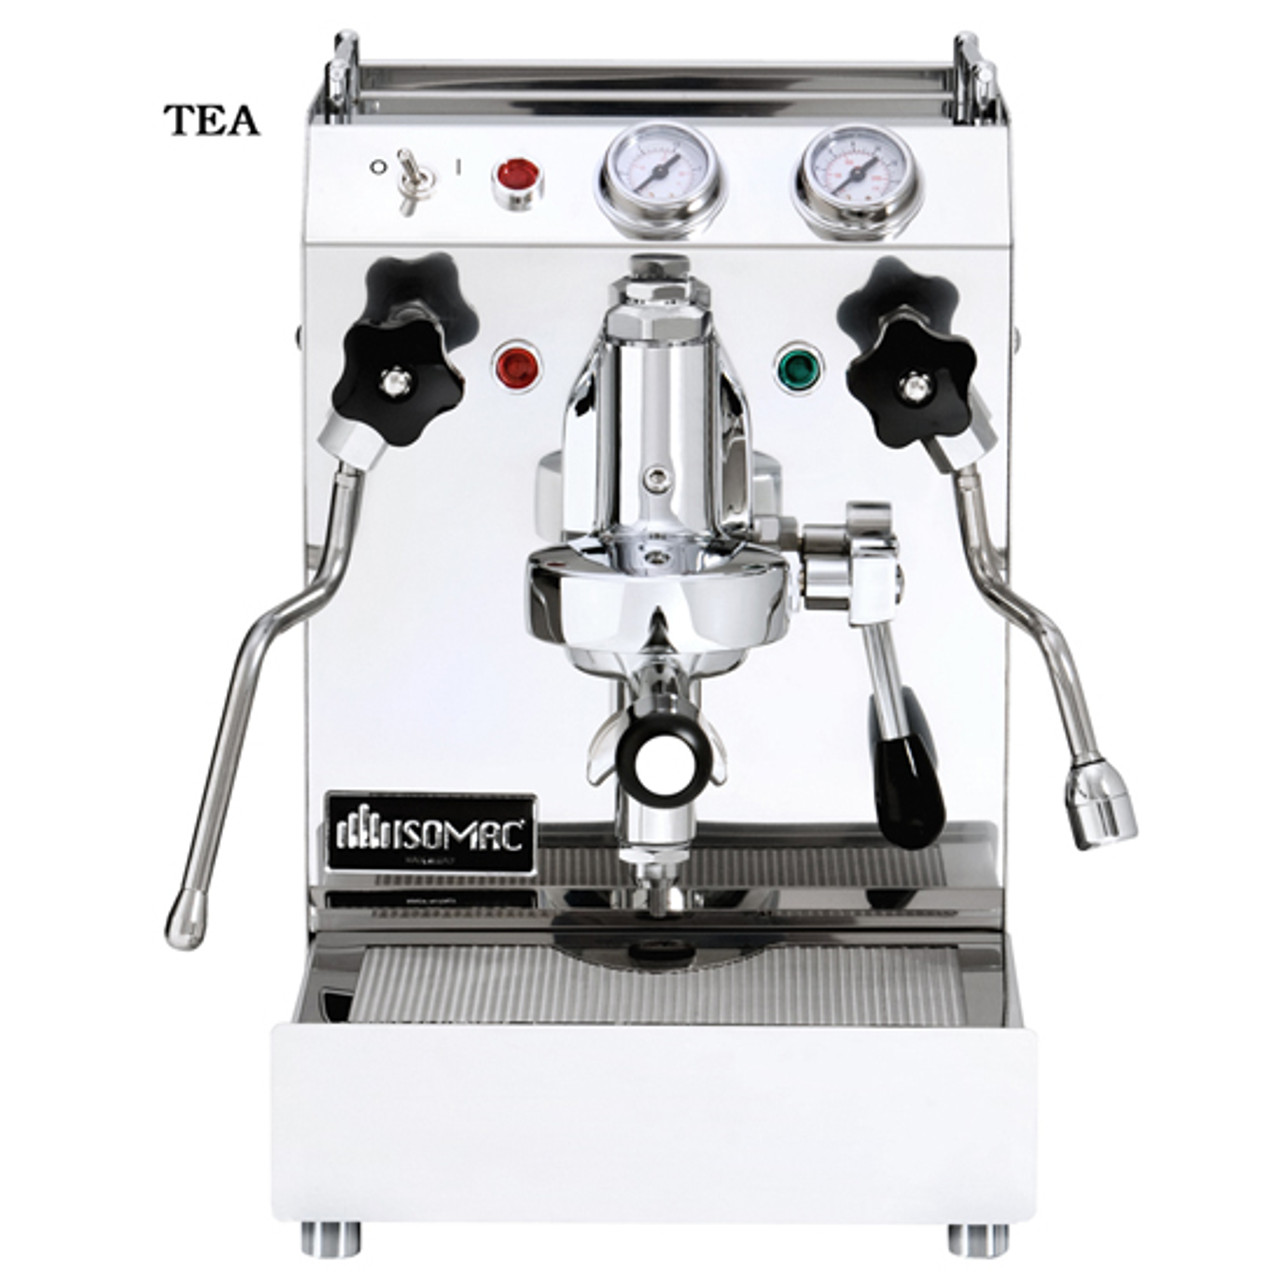 ISOMAC COMPLETE TWO CUP PORTAFILTER